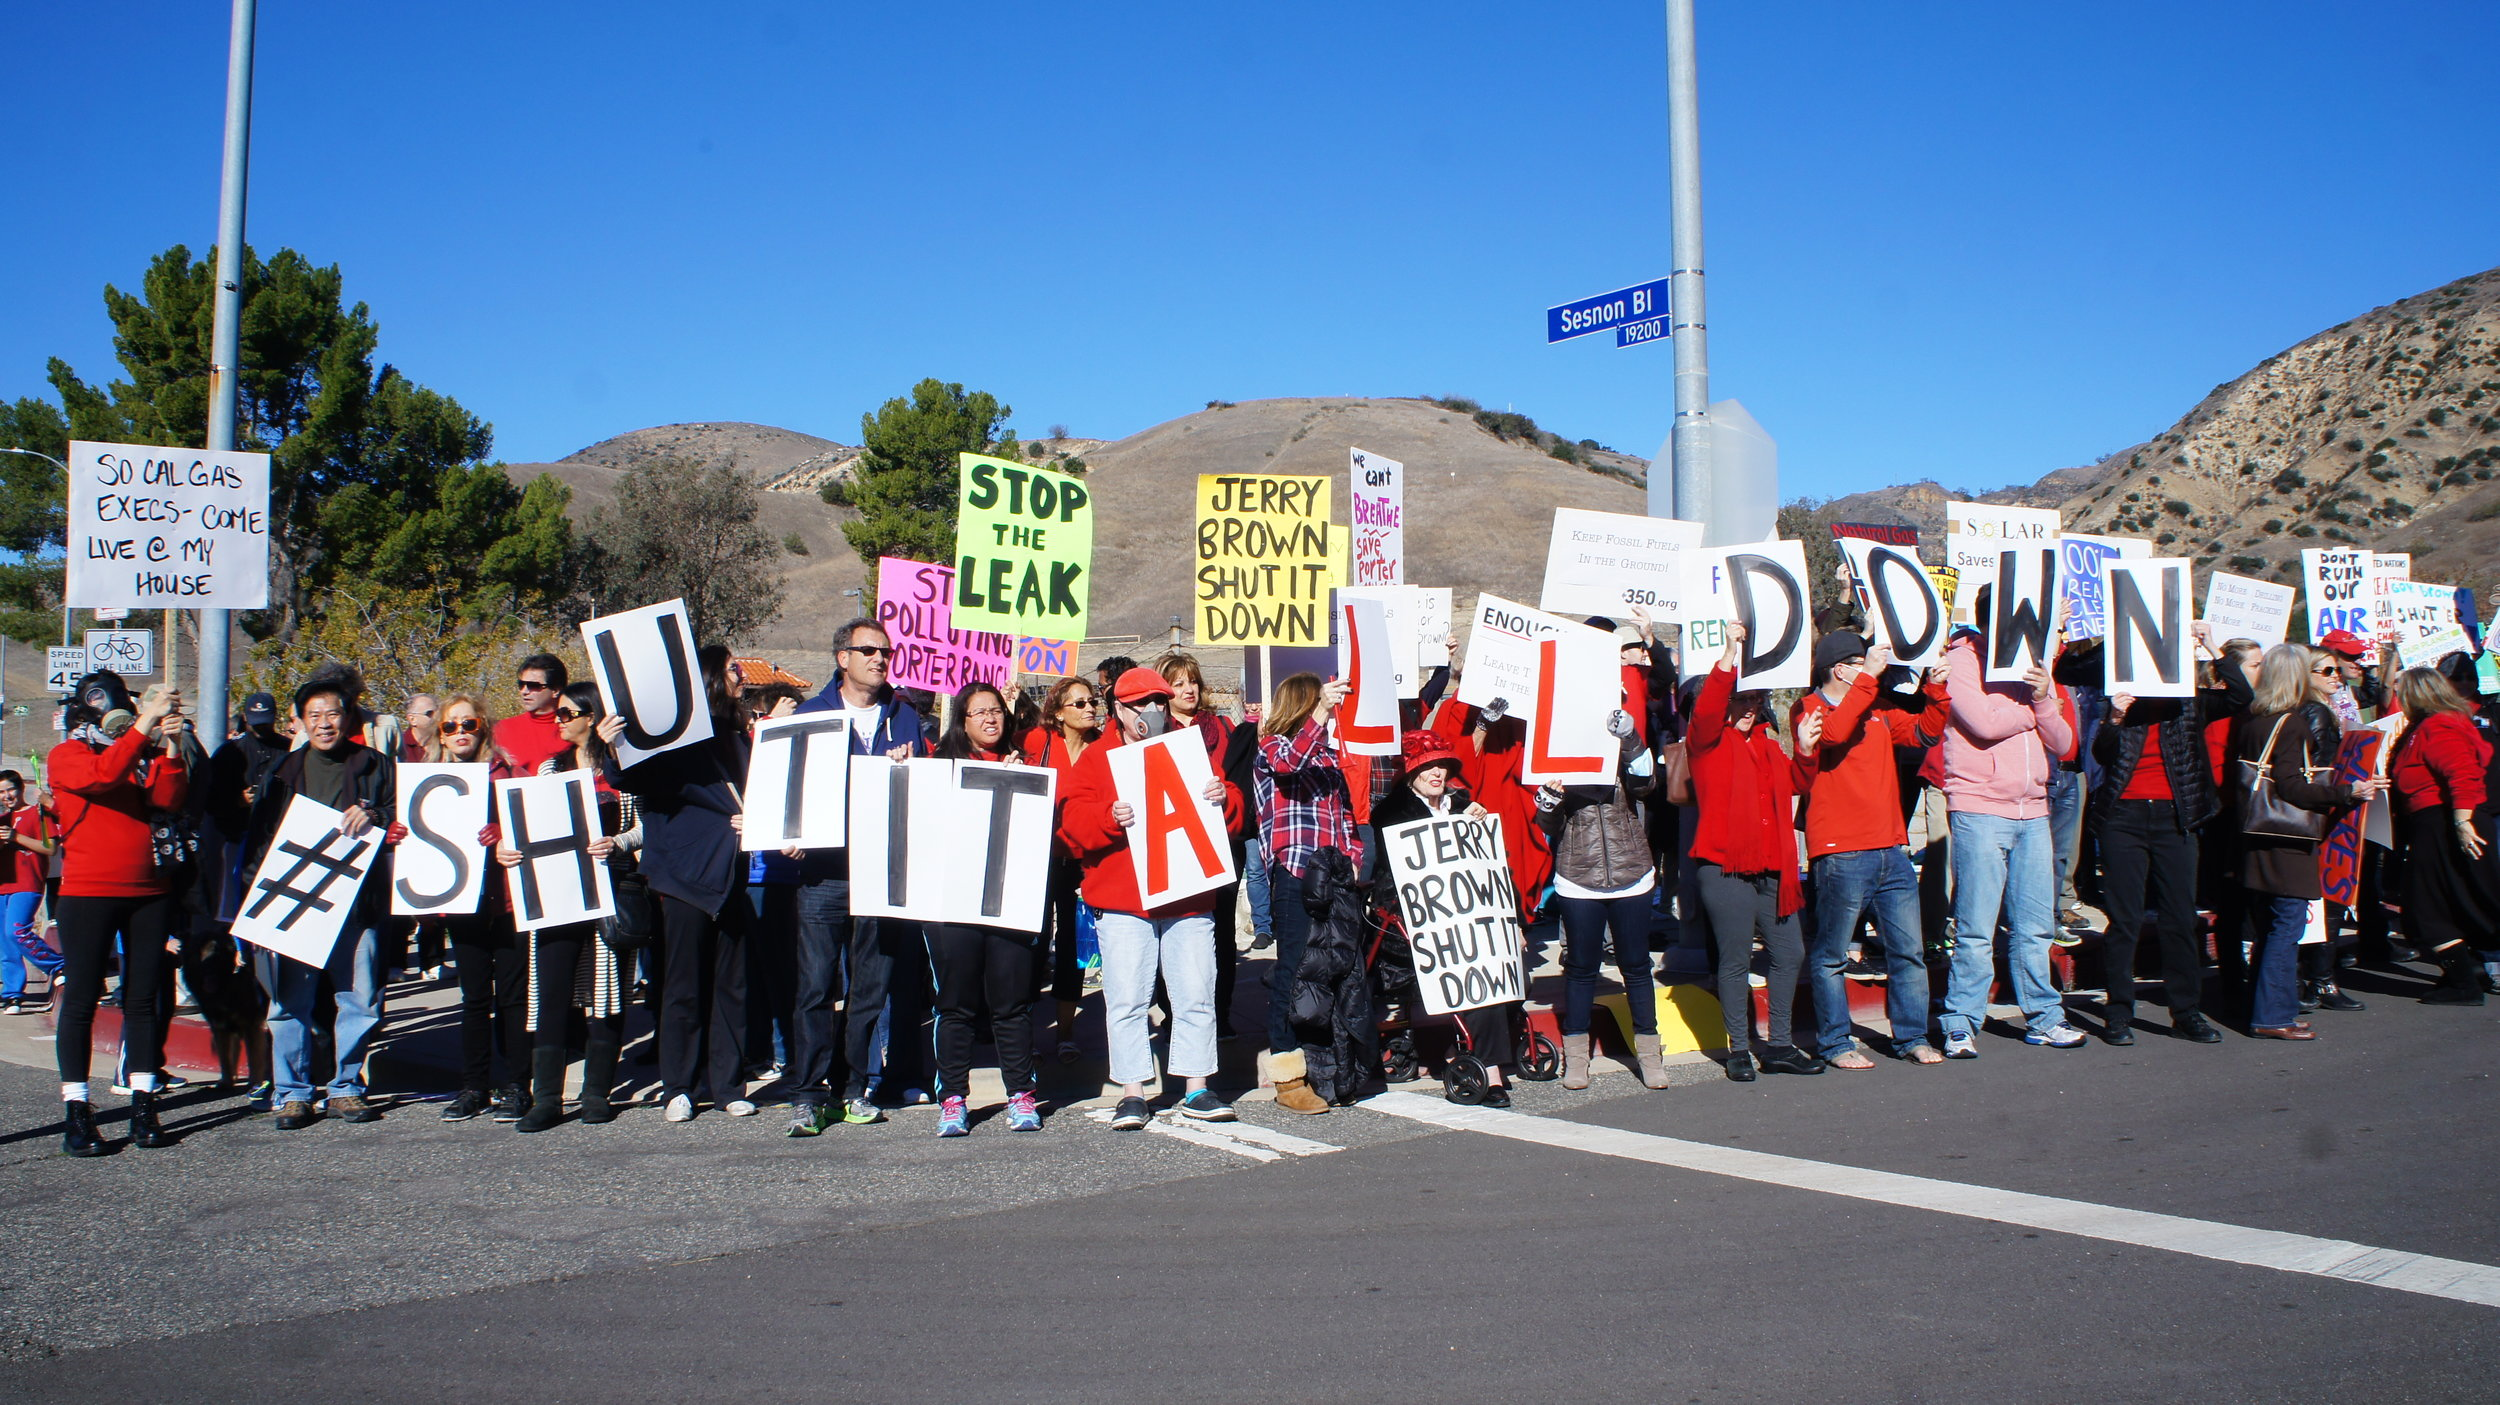 Protestors demand shutdown of nearby natural gas operations.